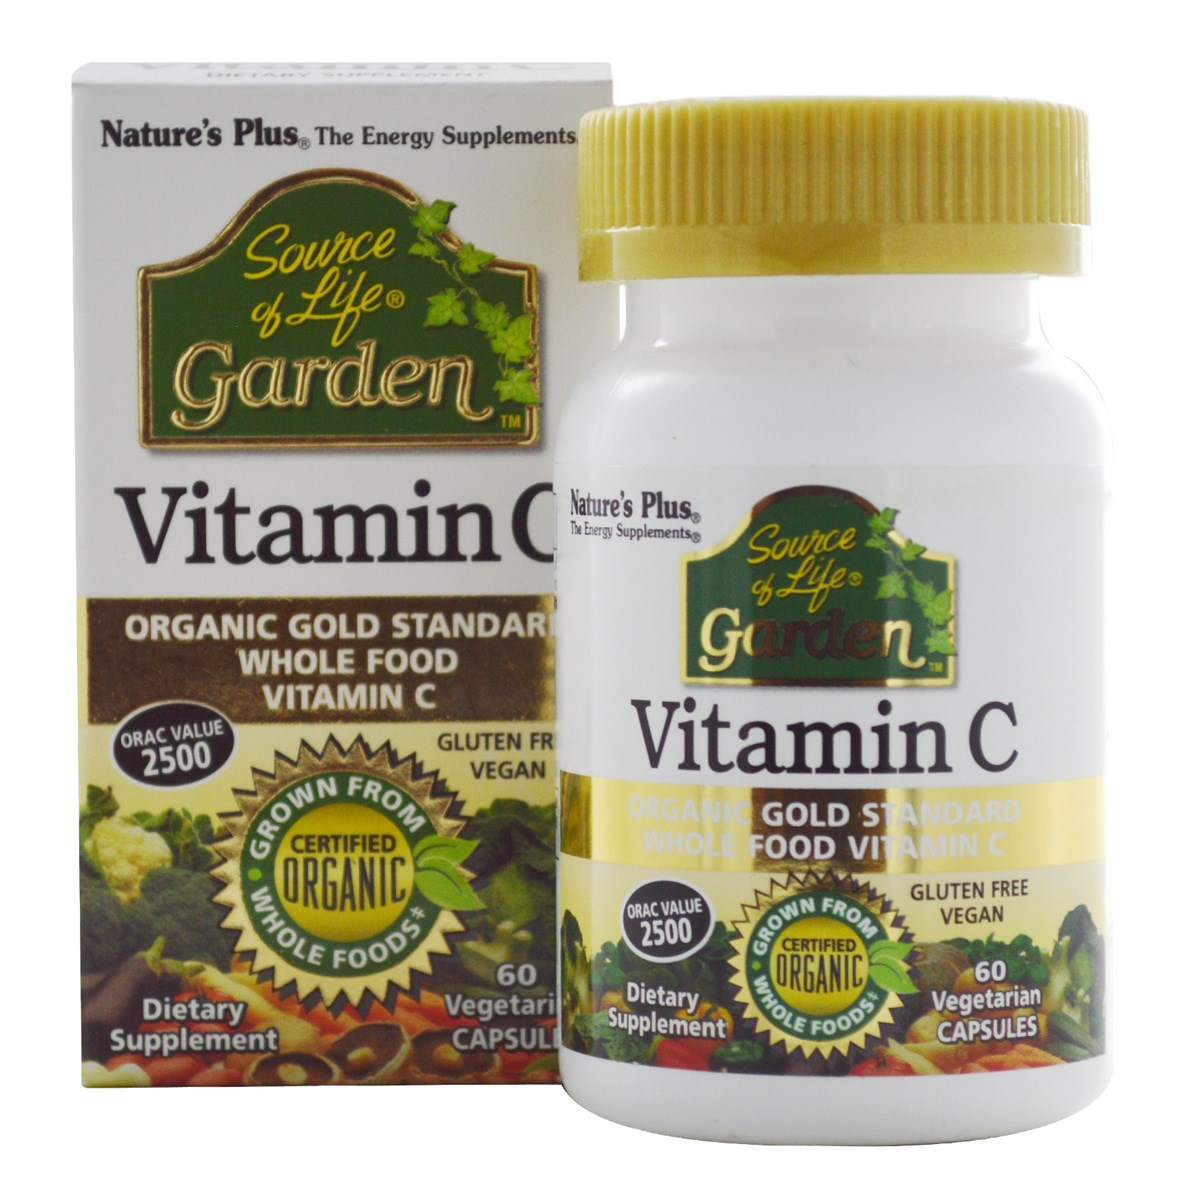 Natures Plus Source of Life Garden Vitamin C 500 mg Vcaps